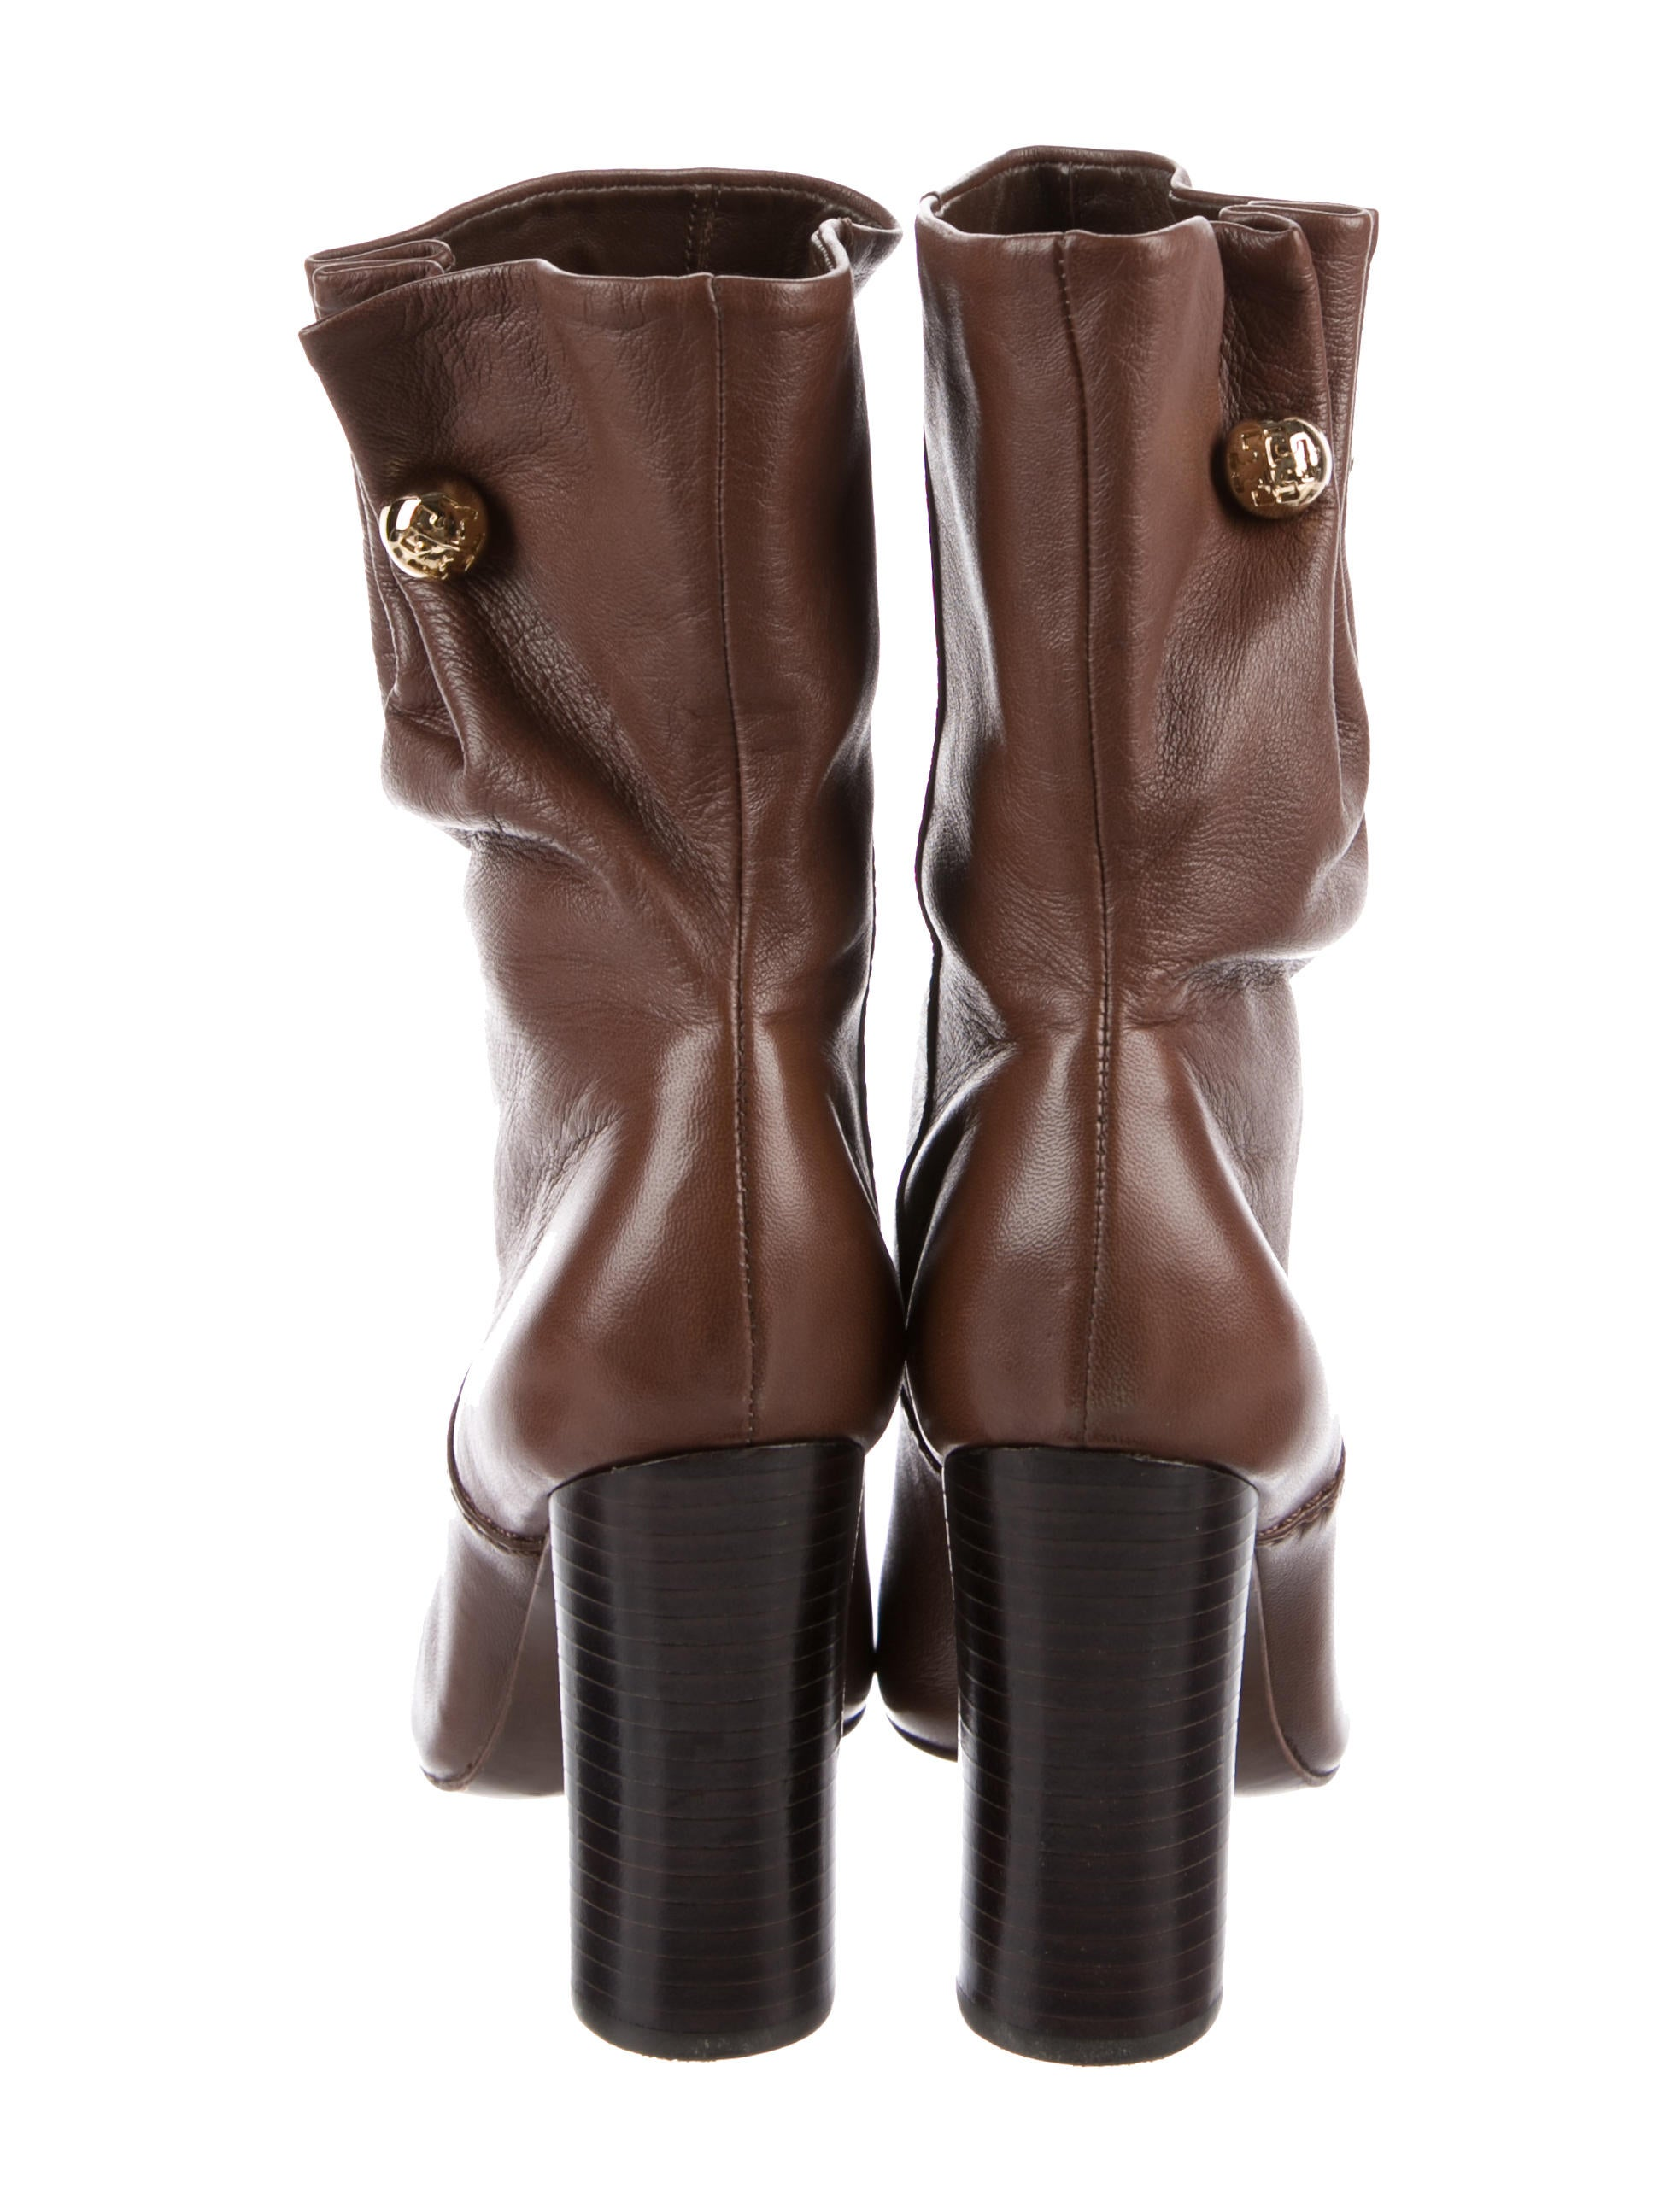 Tory Burch Sable Embellished Boots outlet pay with visa discount outlet store sale 2014 lg4KWS